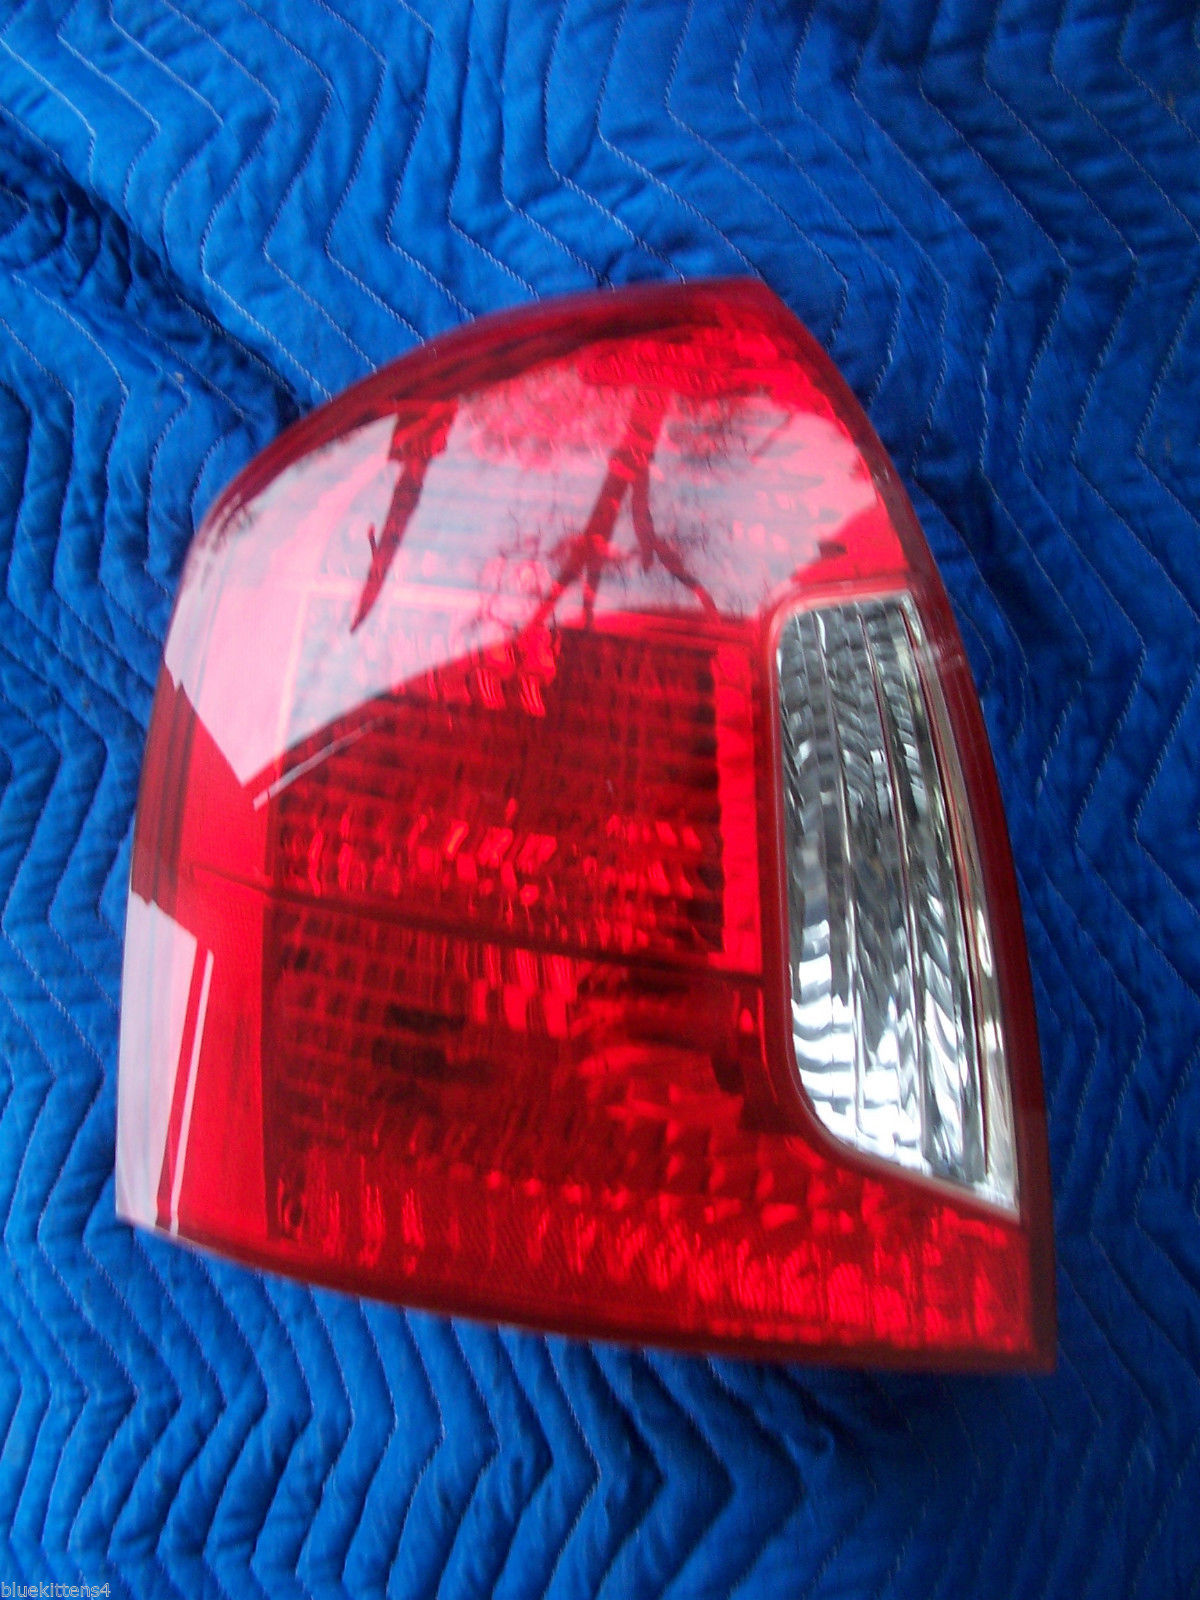 2007 ACCENT 4 DOOR LEFT HEAD LIGHT OEM USED ORIGINAL HYUNDAI PART 2008 2009 2010